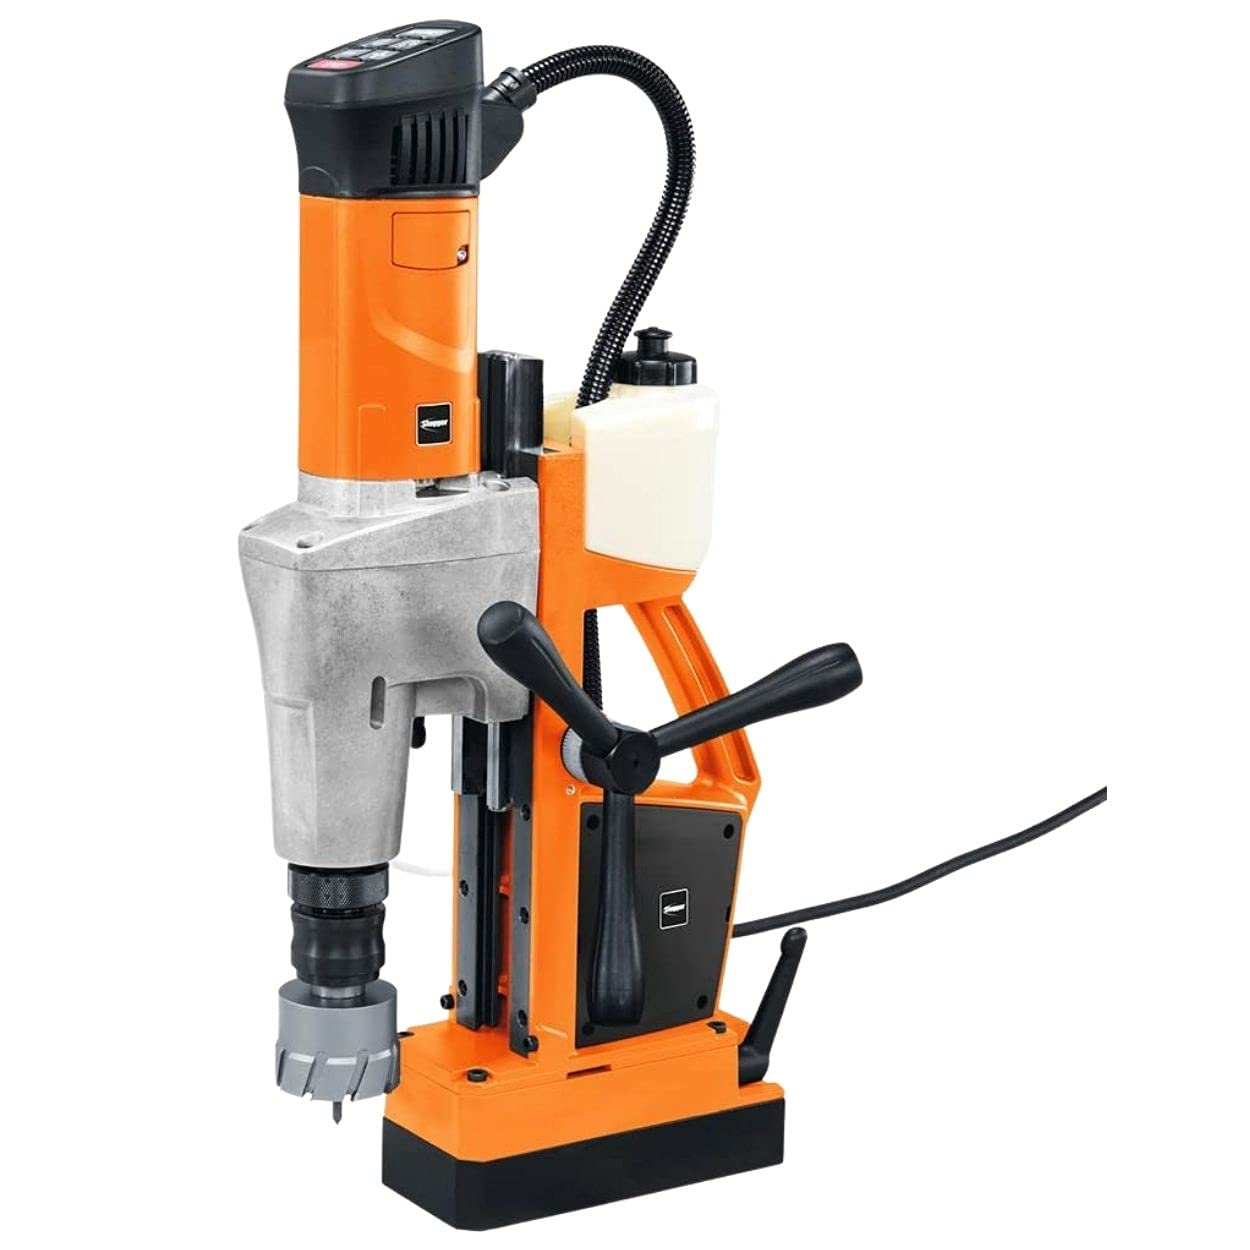 Sales All items free shipping for sale Jancy Slugger by Fein - JCM 200U Drill W Carbide 1200 Magnetic